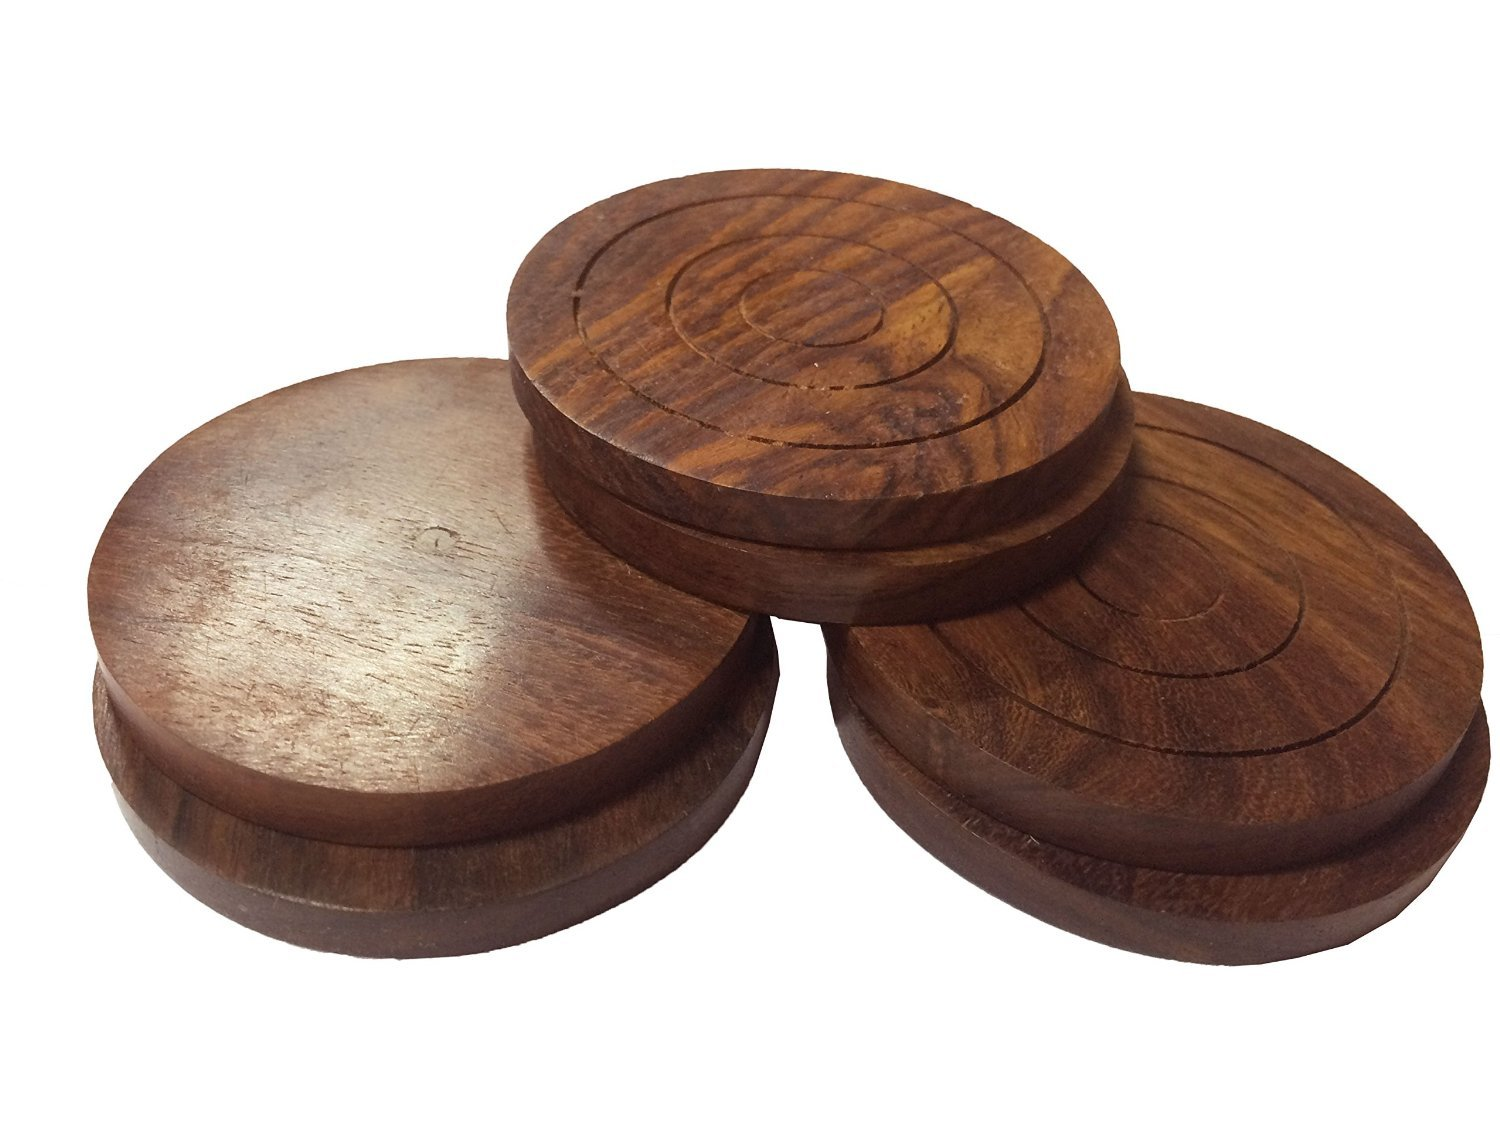 Craftgasmic Wood Coaster Set with 6 Round Handmade Table Duck Shaped Coasters and Decorative Wooden Holder for Tea Cups Coffee Mugs Beer Cans Bar Tumblers and Water Glasses,